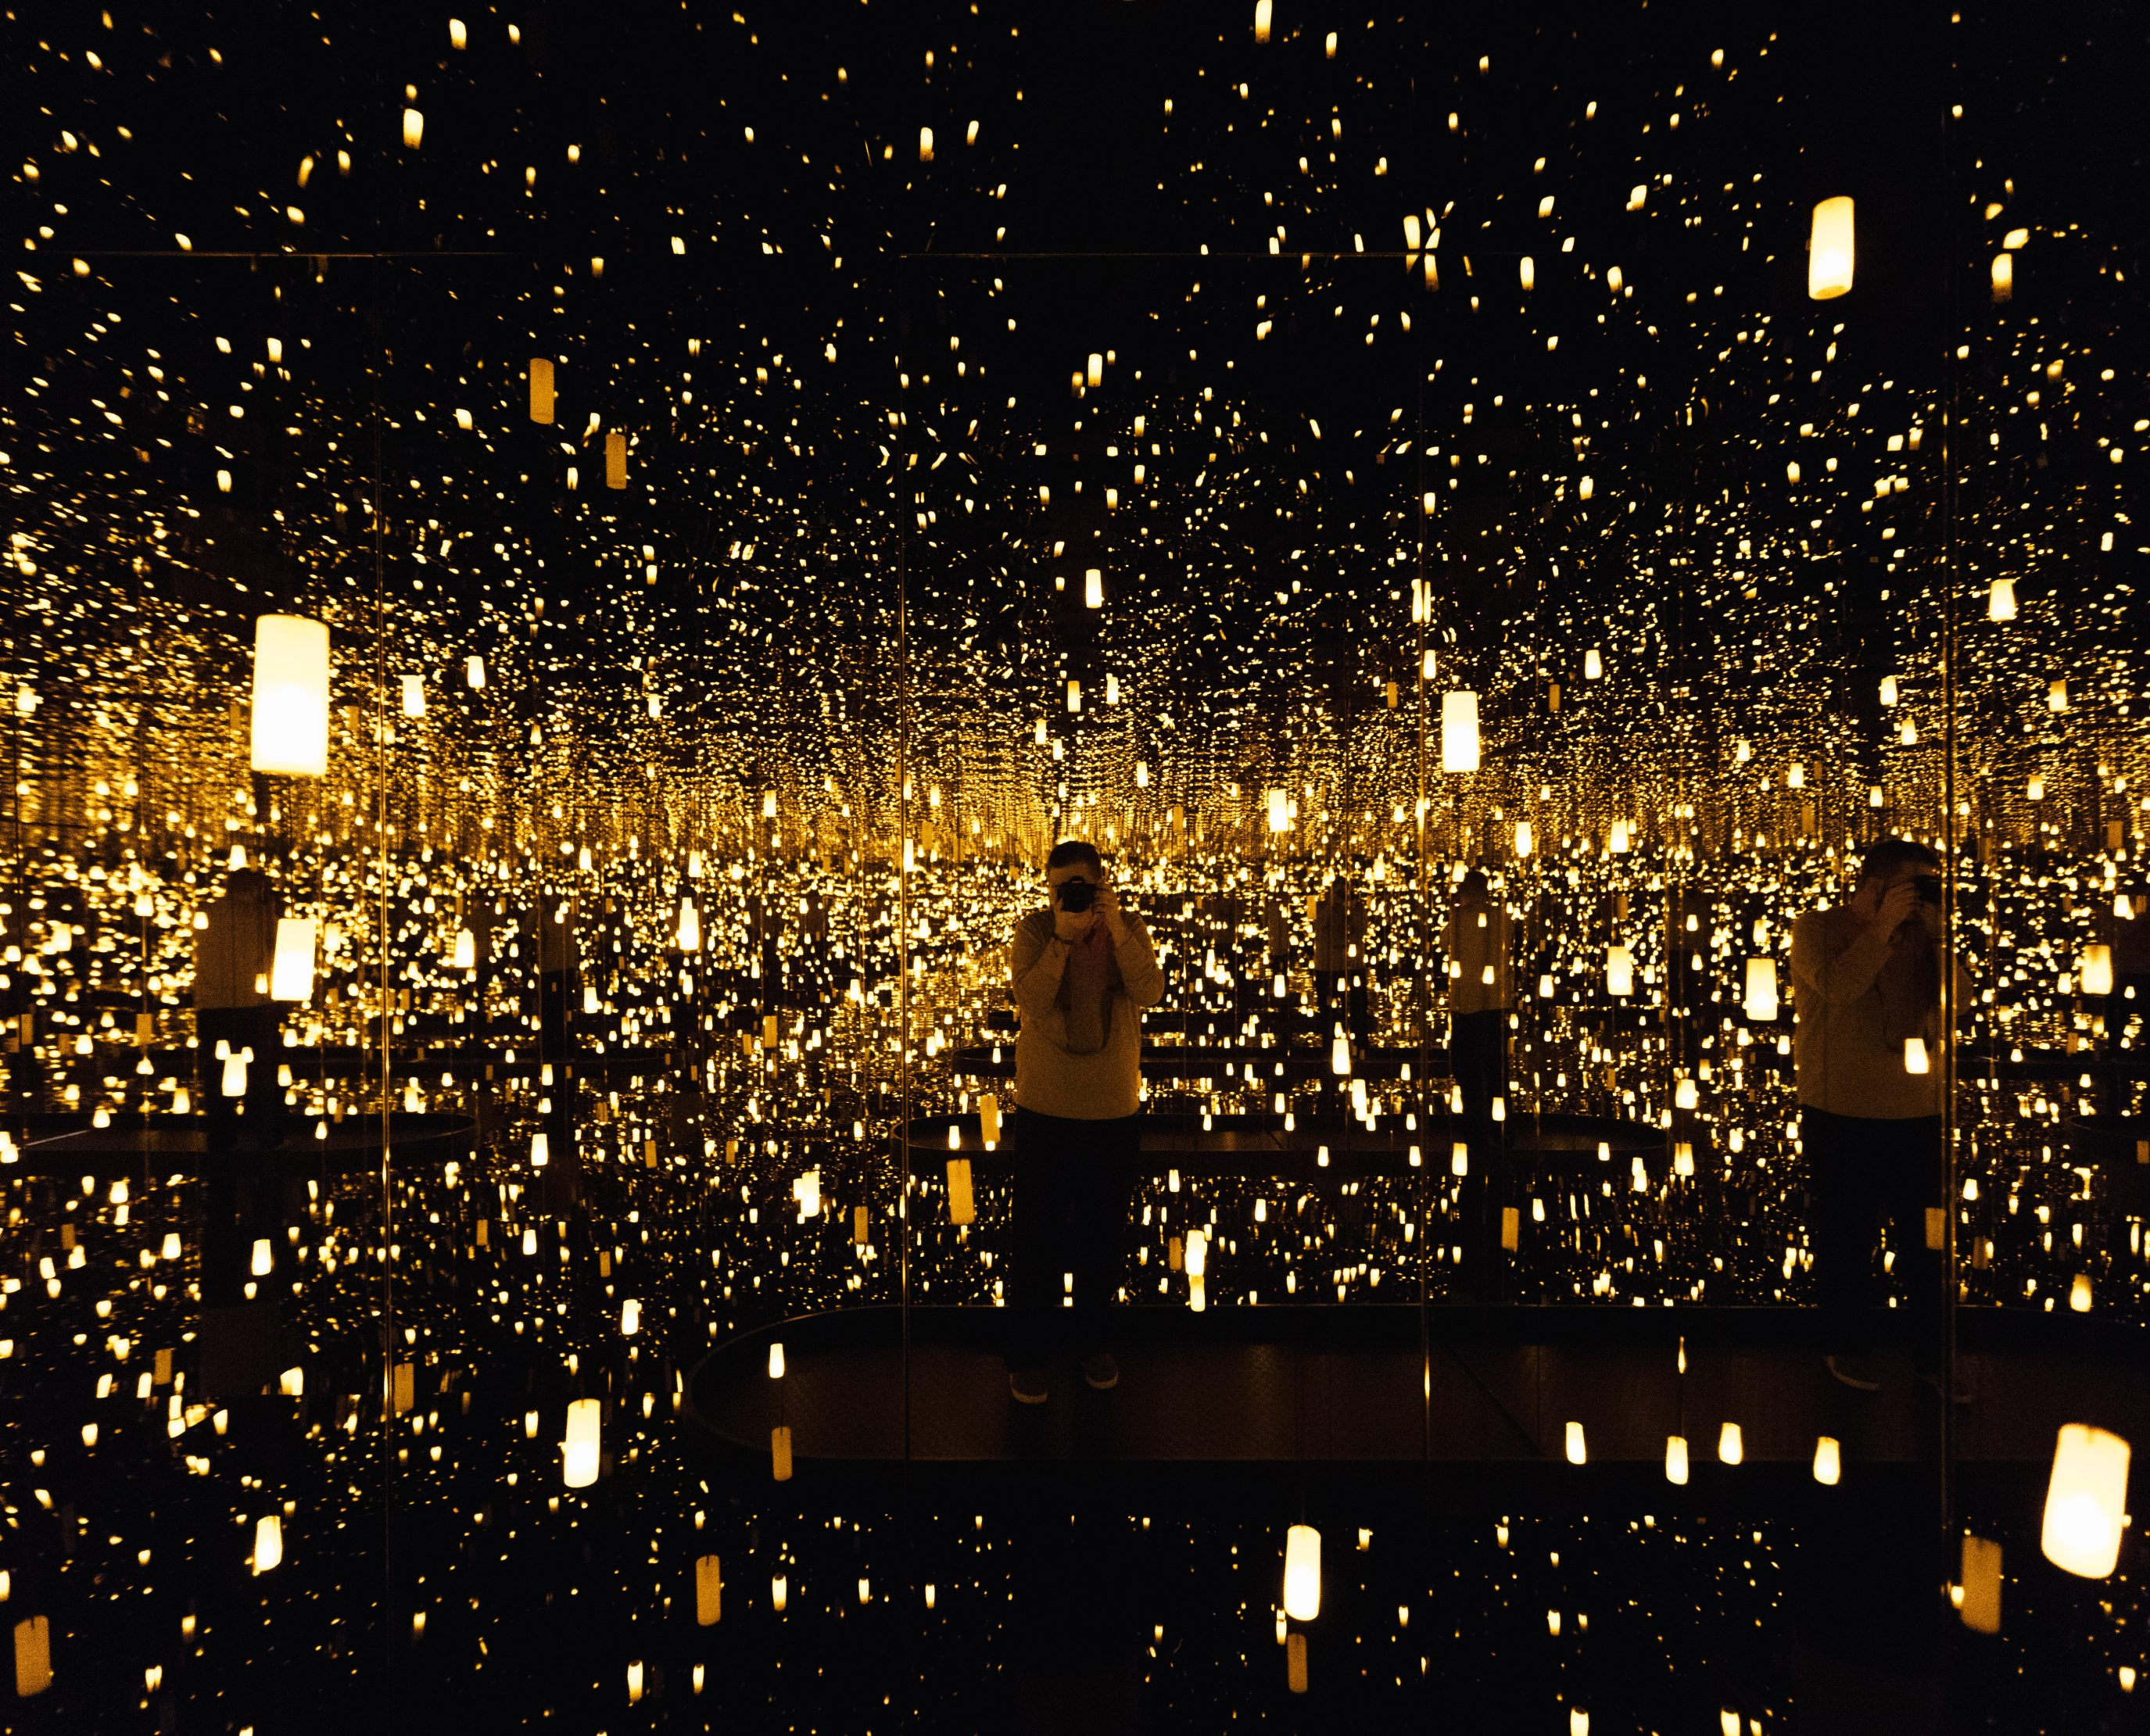 Yayoi Kusama S Infinity Mirrors At The Hirshhorn Museum